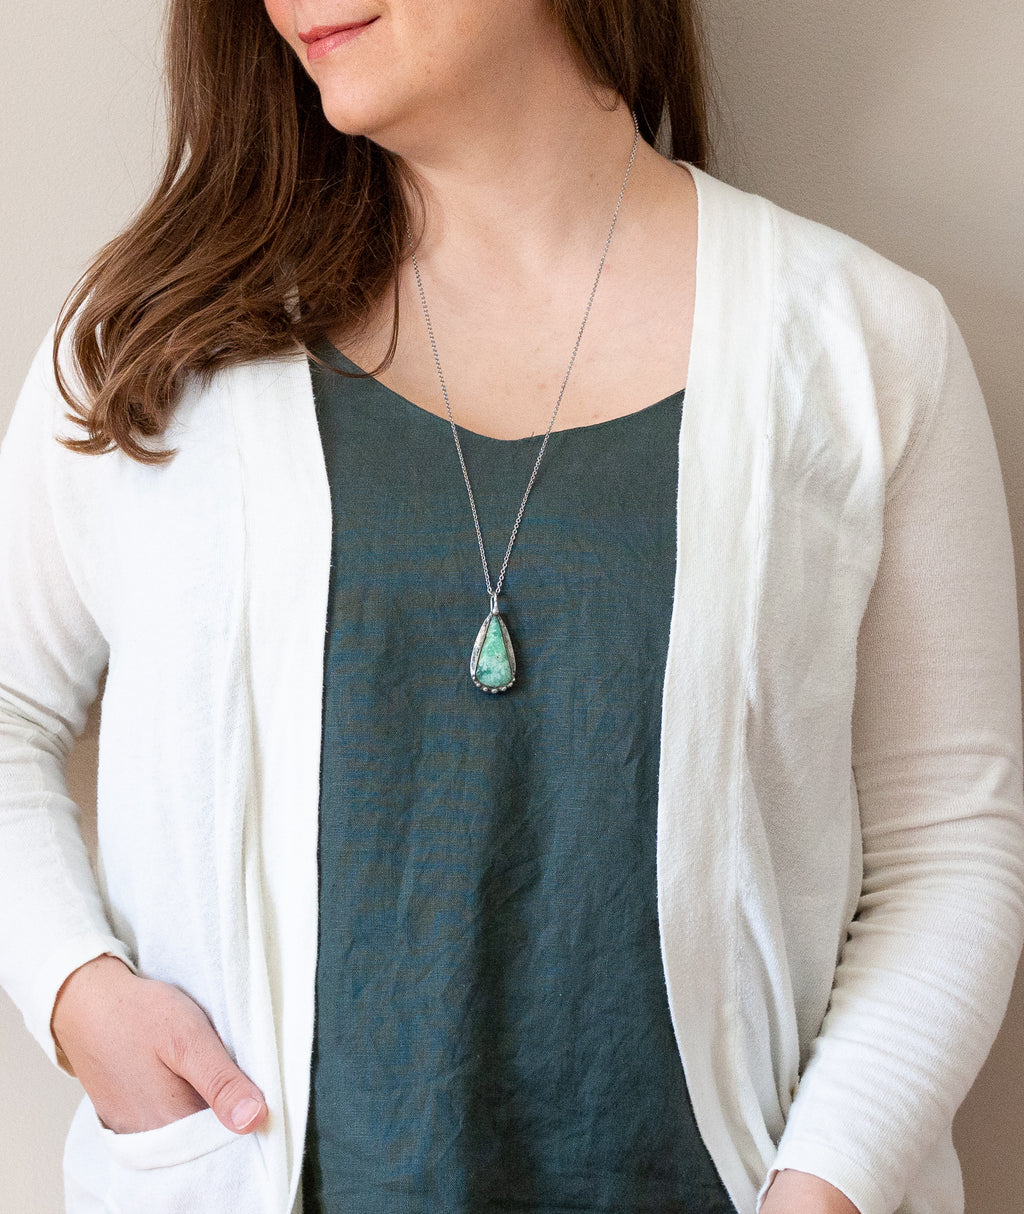 woman in blue top wearing light green turquoise chrysoprase talisman crystal necklace